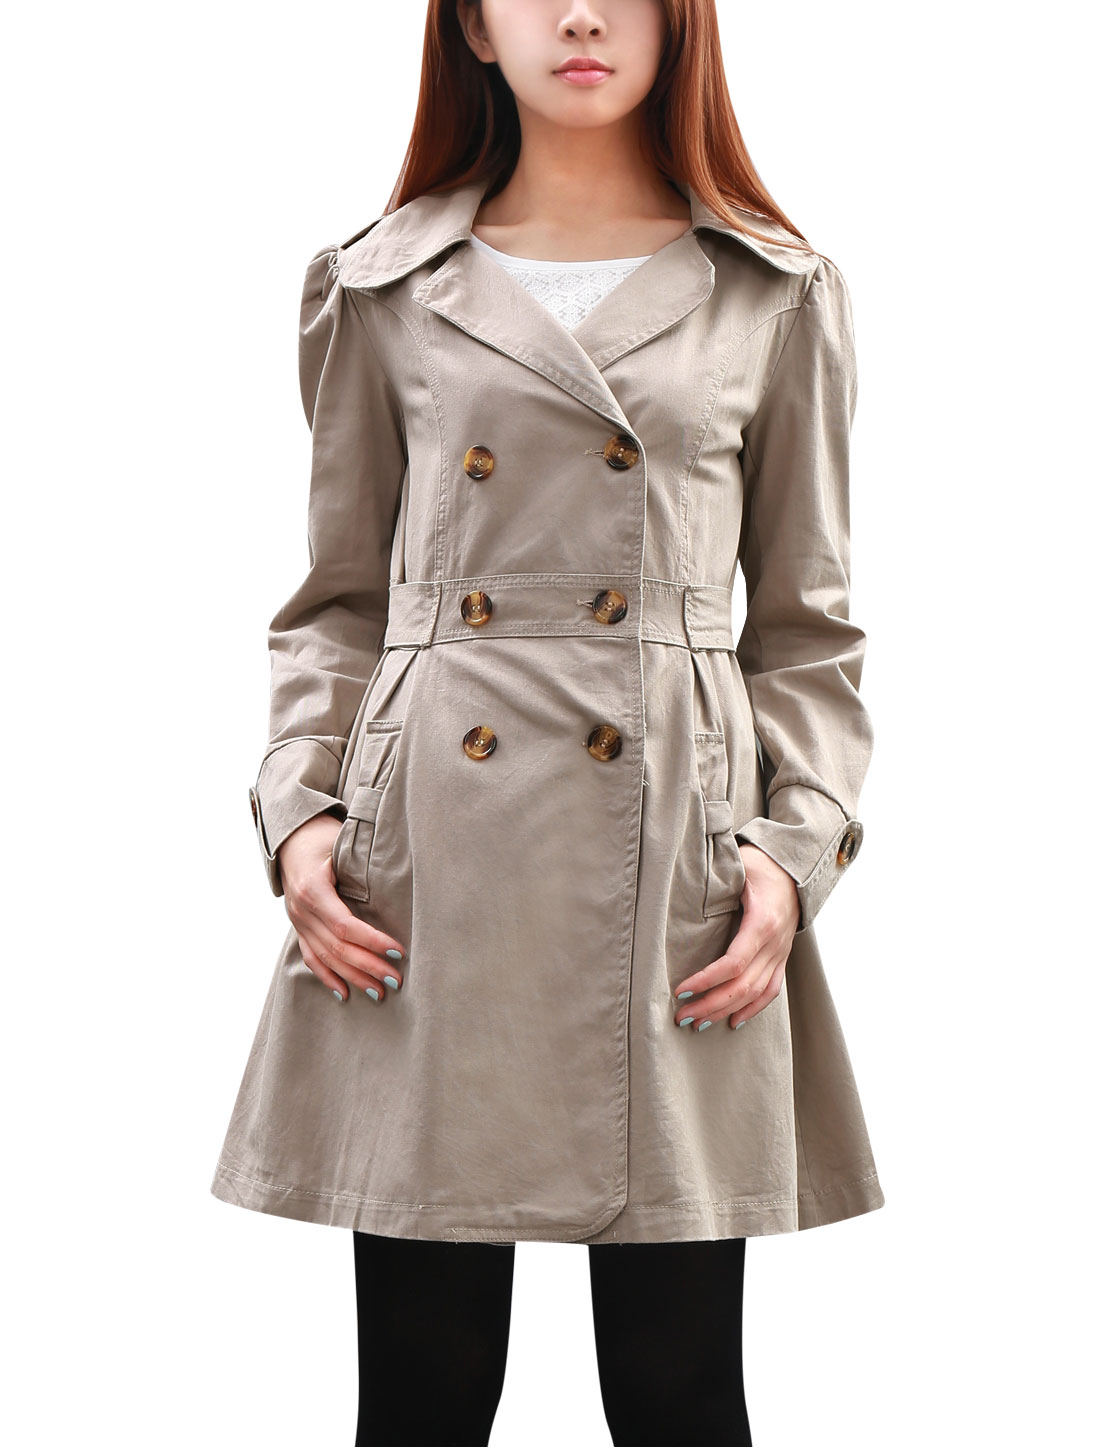 Lady Gray Double Breasted Slant Pockets Slant Pockets Casual Trench Jacket S